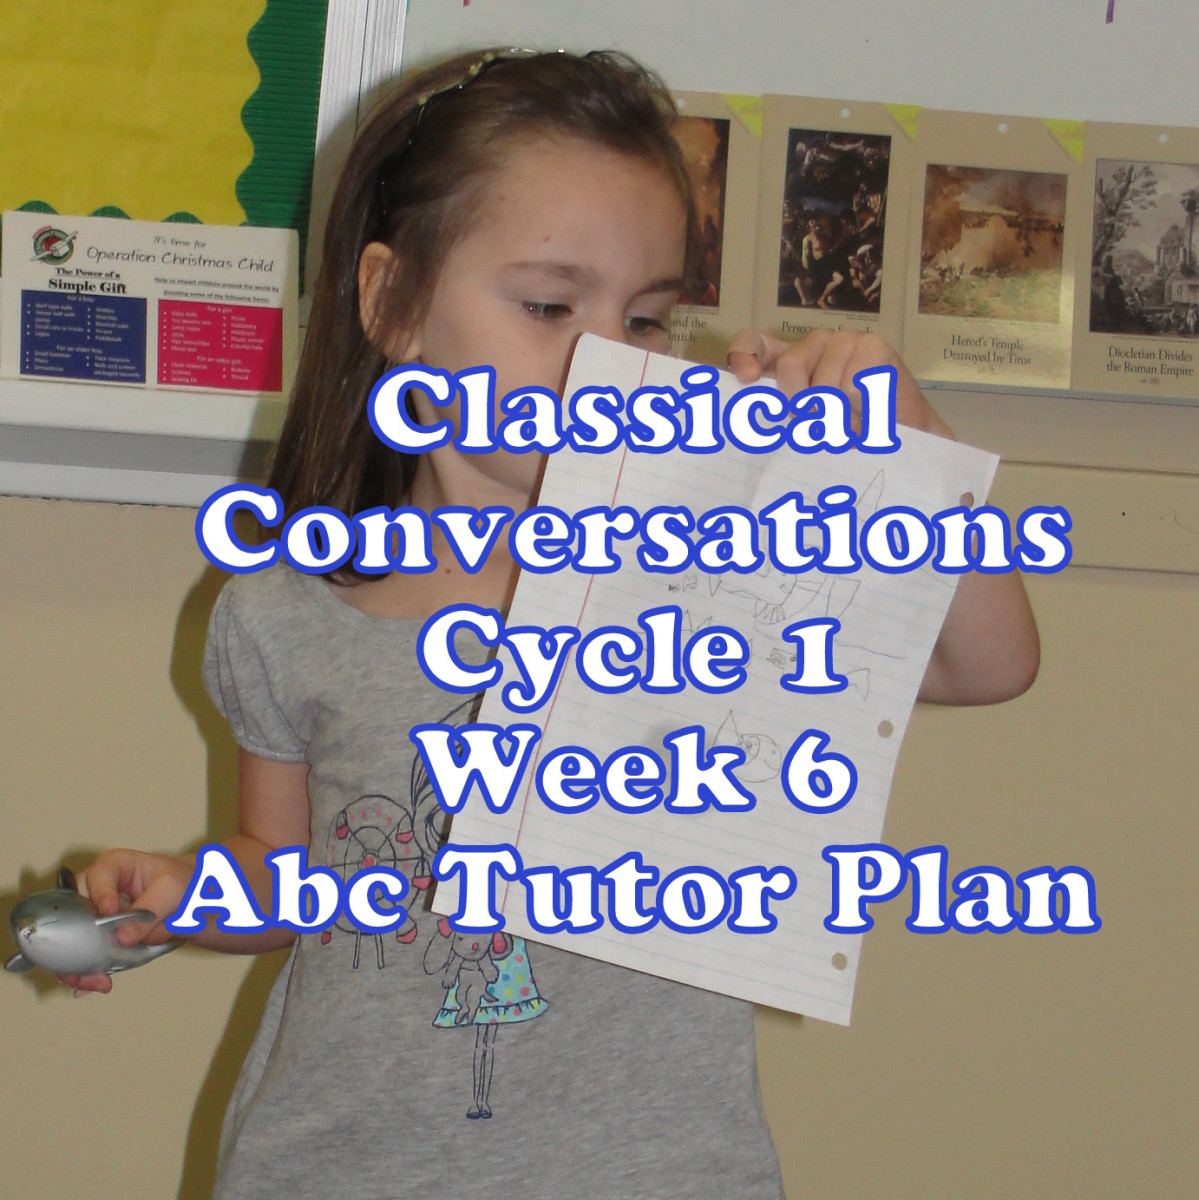 CC Cycle 1 Week 6 Plan for Abecedarian Tutors